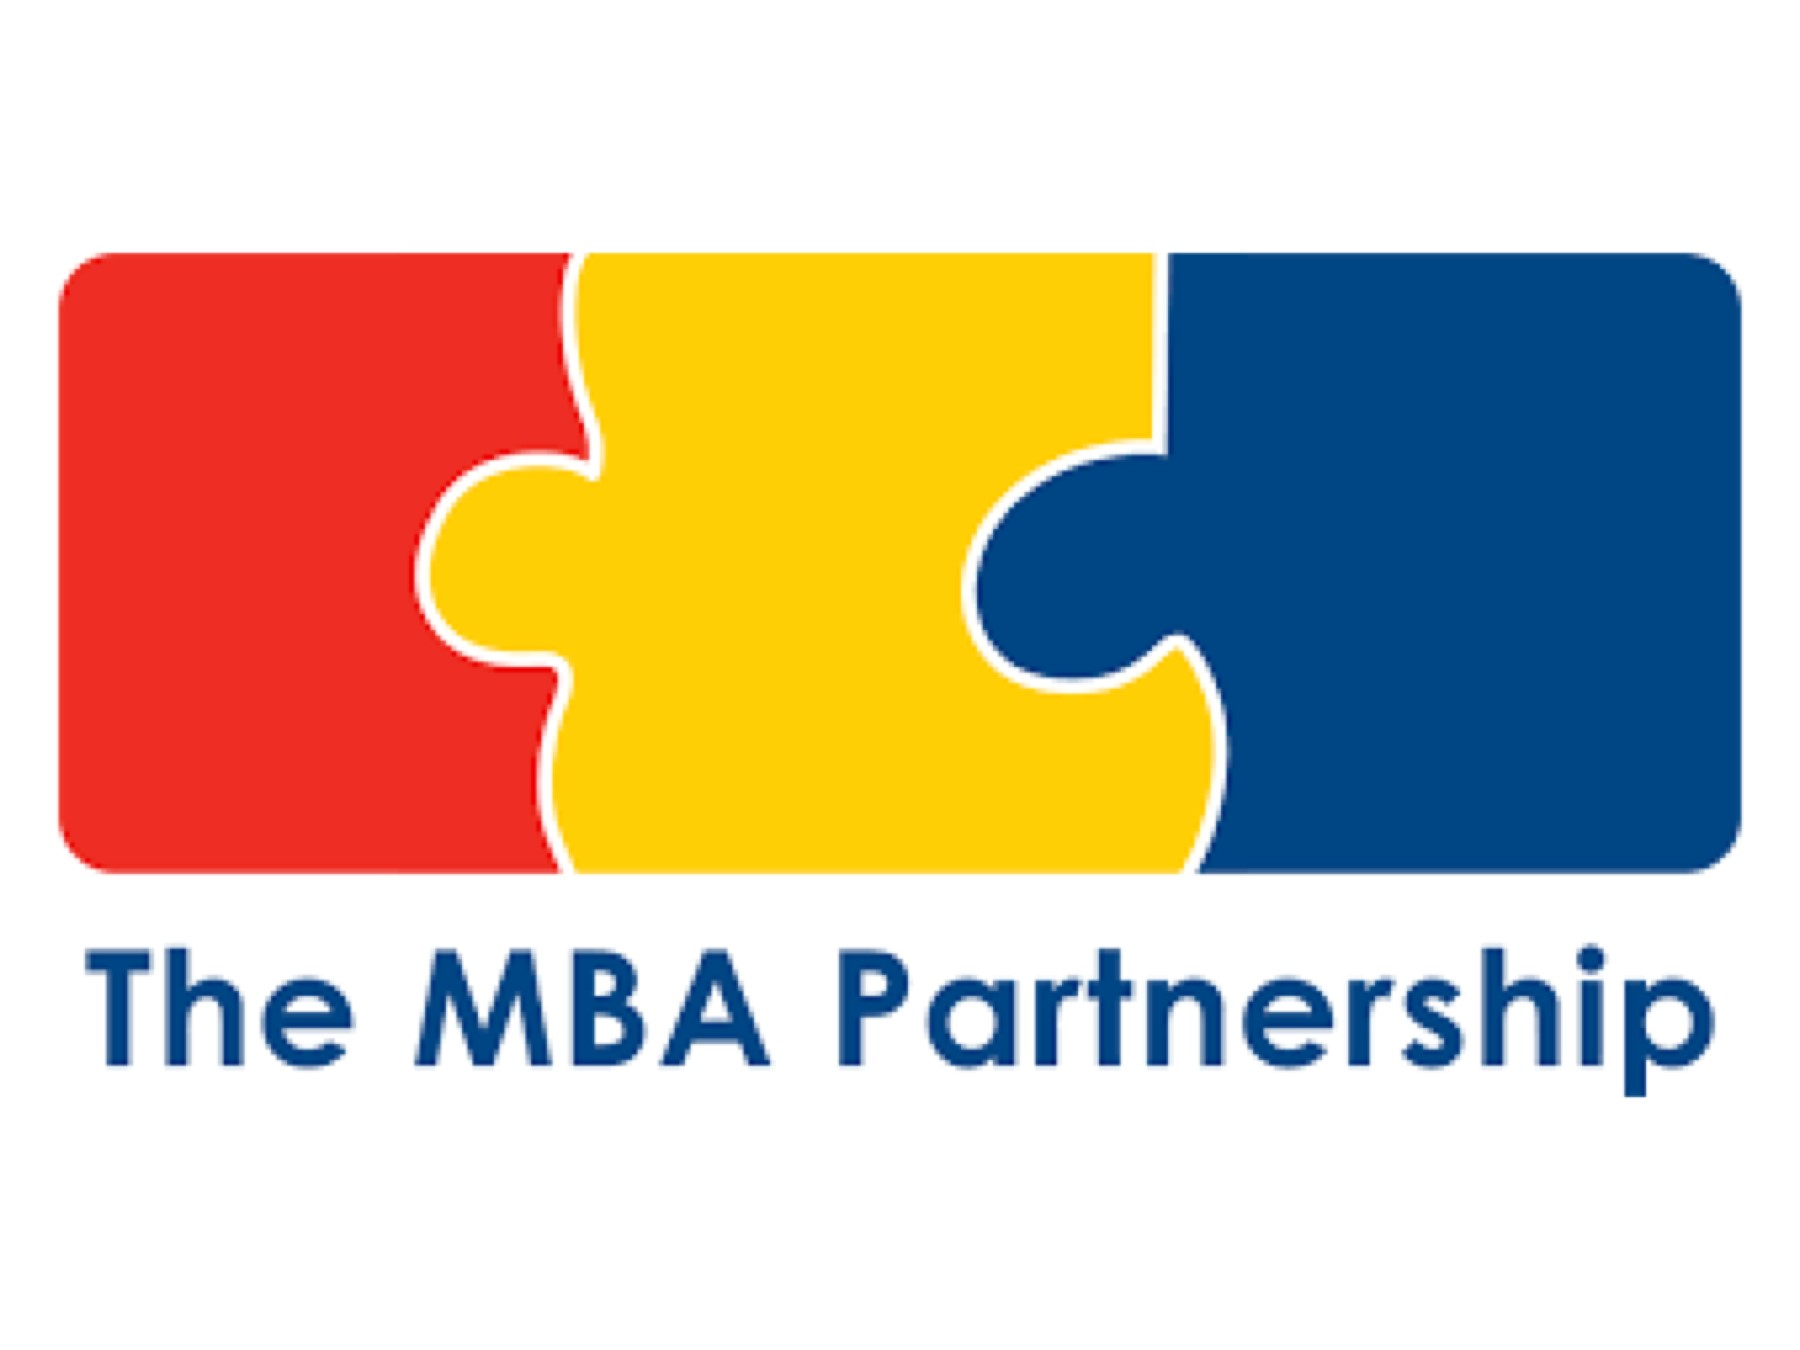 The MBA Partnership